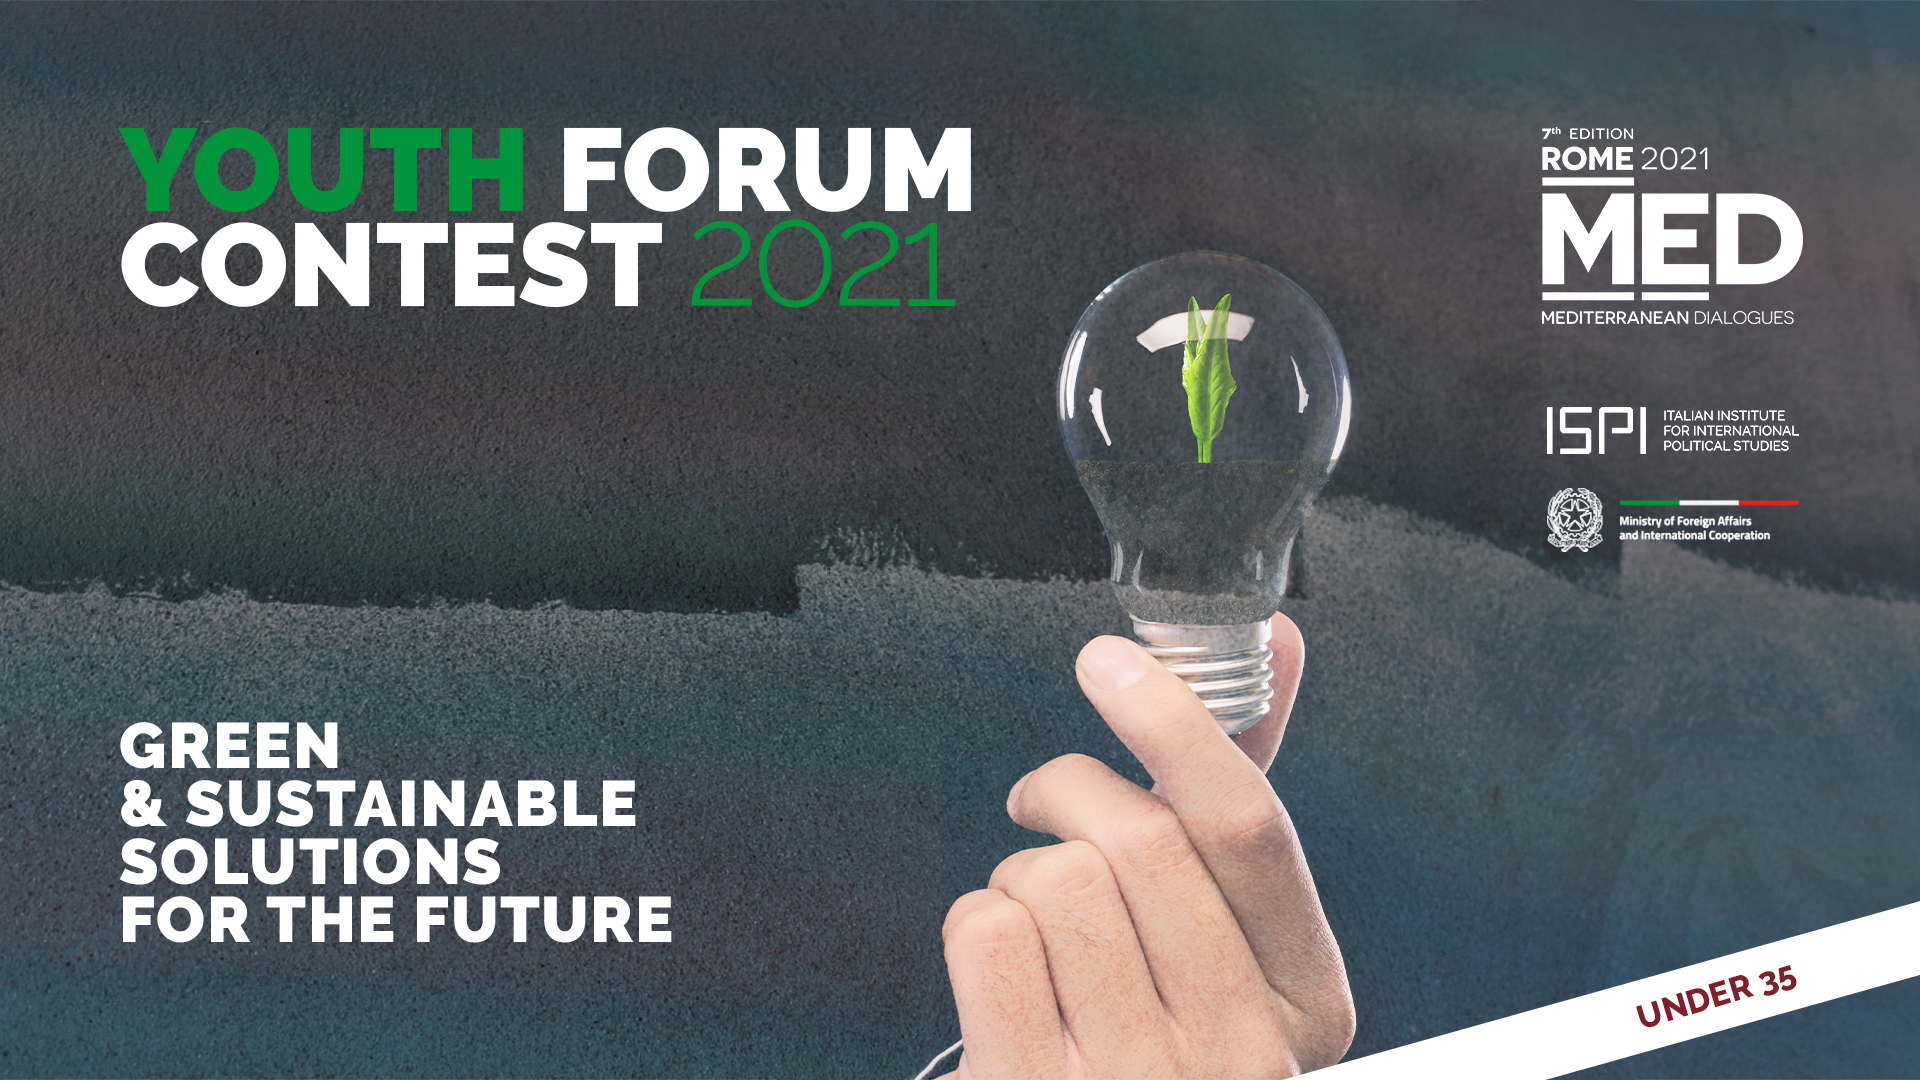 Youth Forum Contest 2021 – Green and sustainable solutions for the future